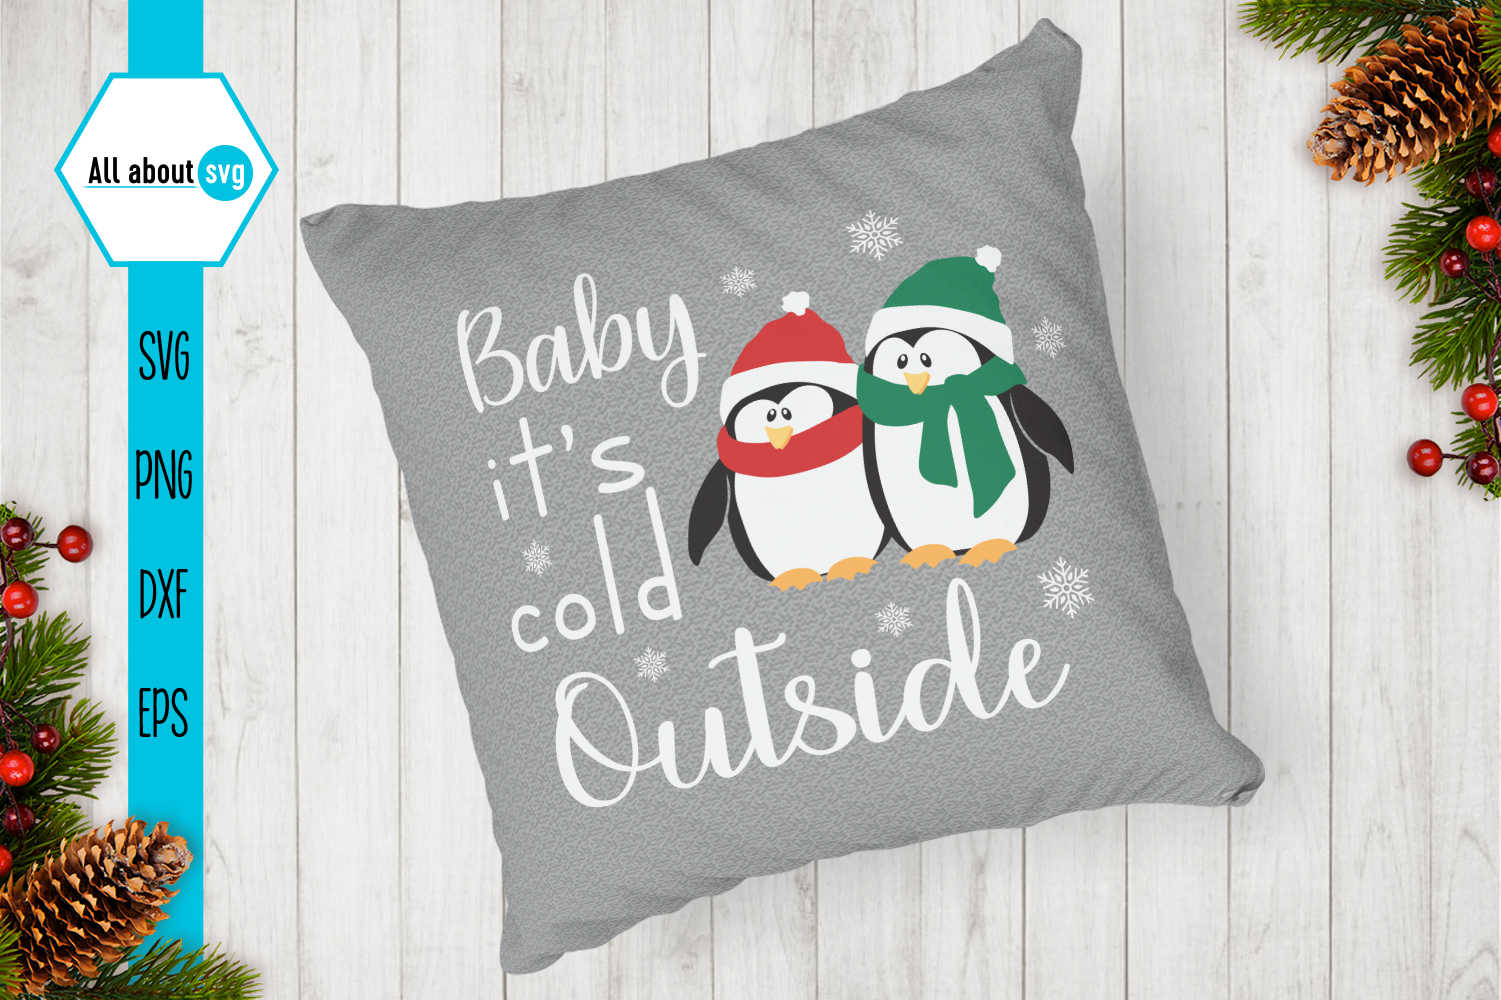 Baby It's Cold Outside Svg, Penguin Svg example image 3